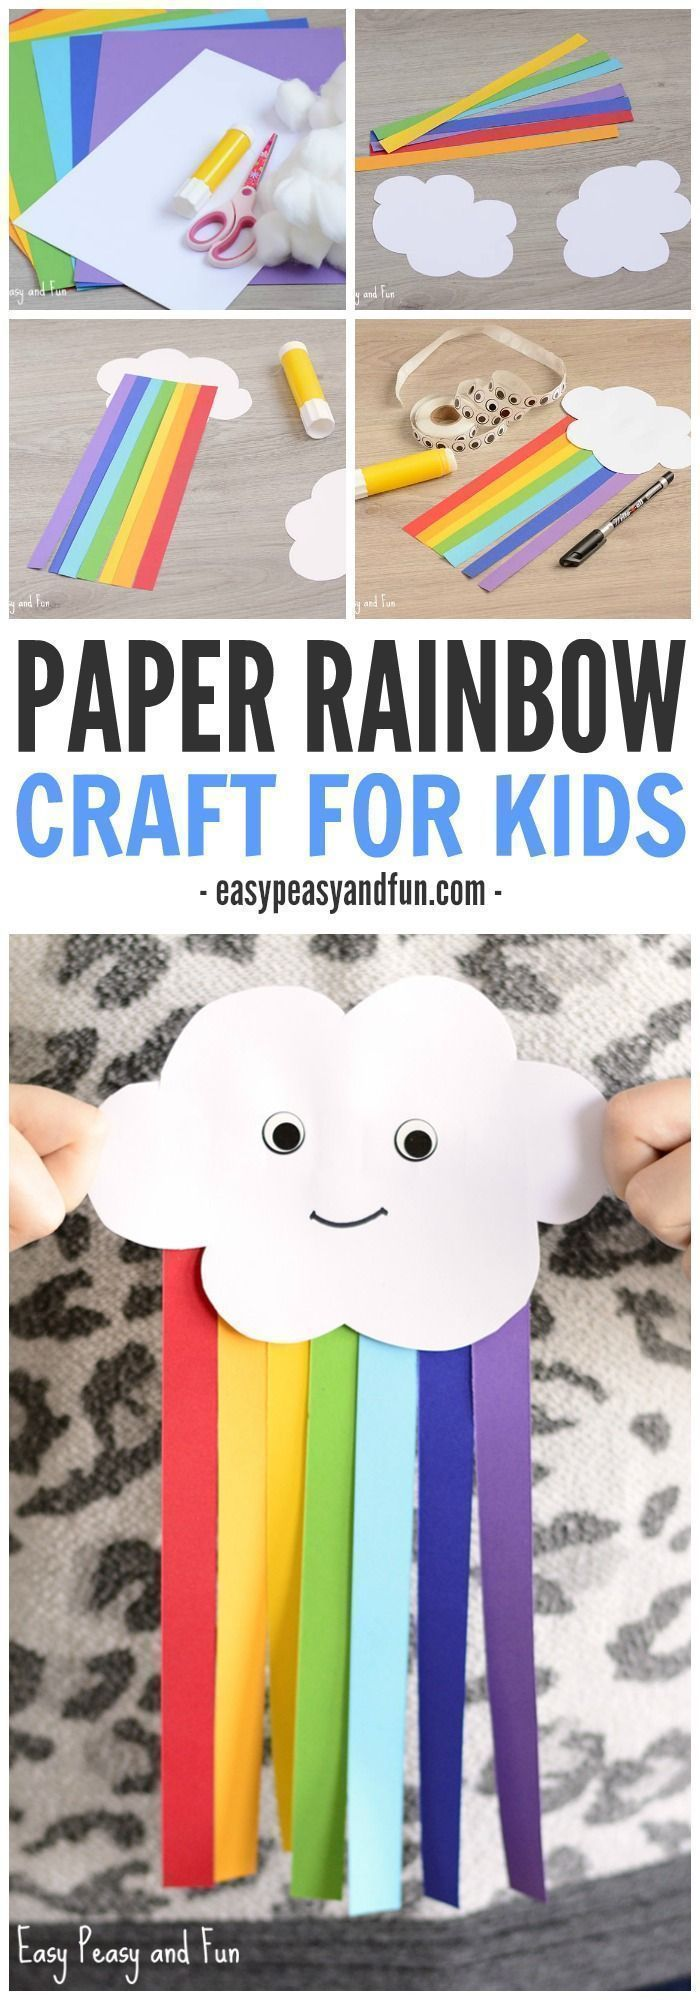 DIY Craft: Mr. Happy cloud is here to play! This sweet cloud and paper rainbow craft for kids is a great spring project!